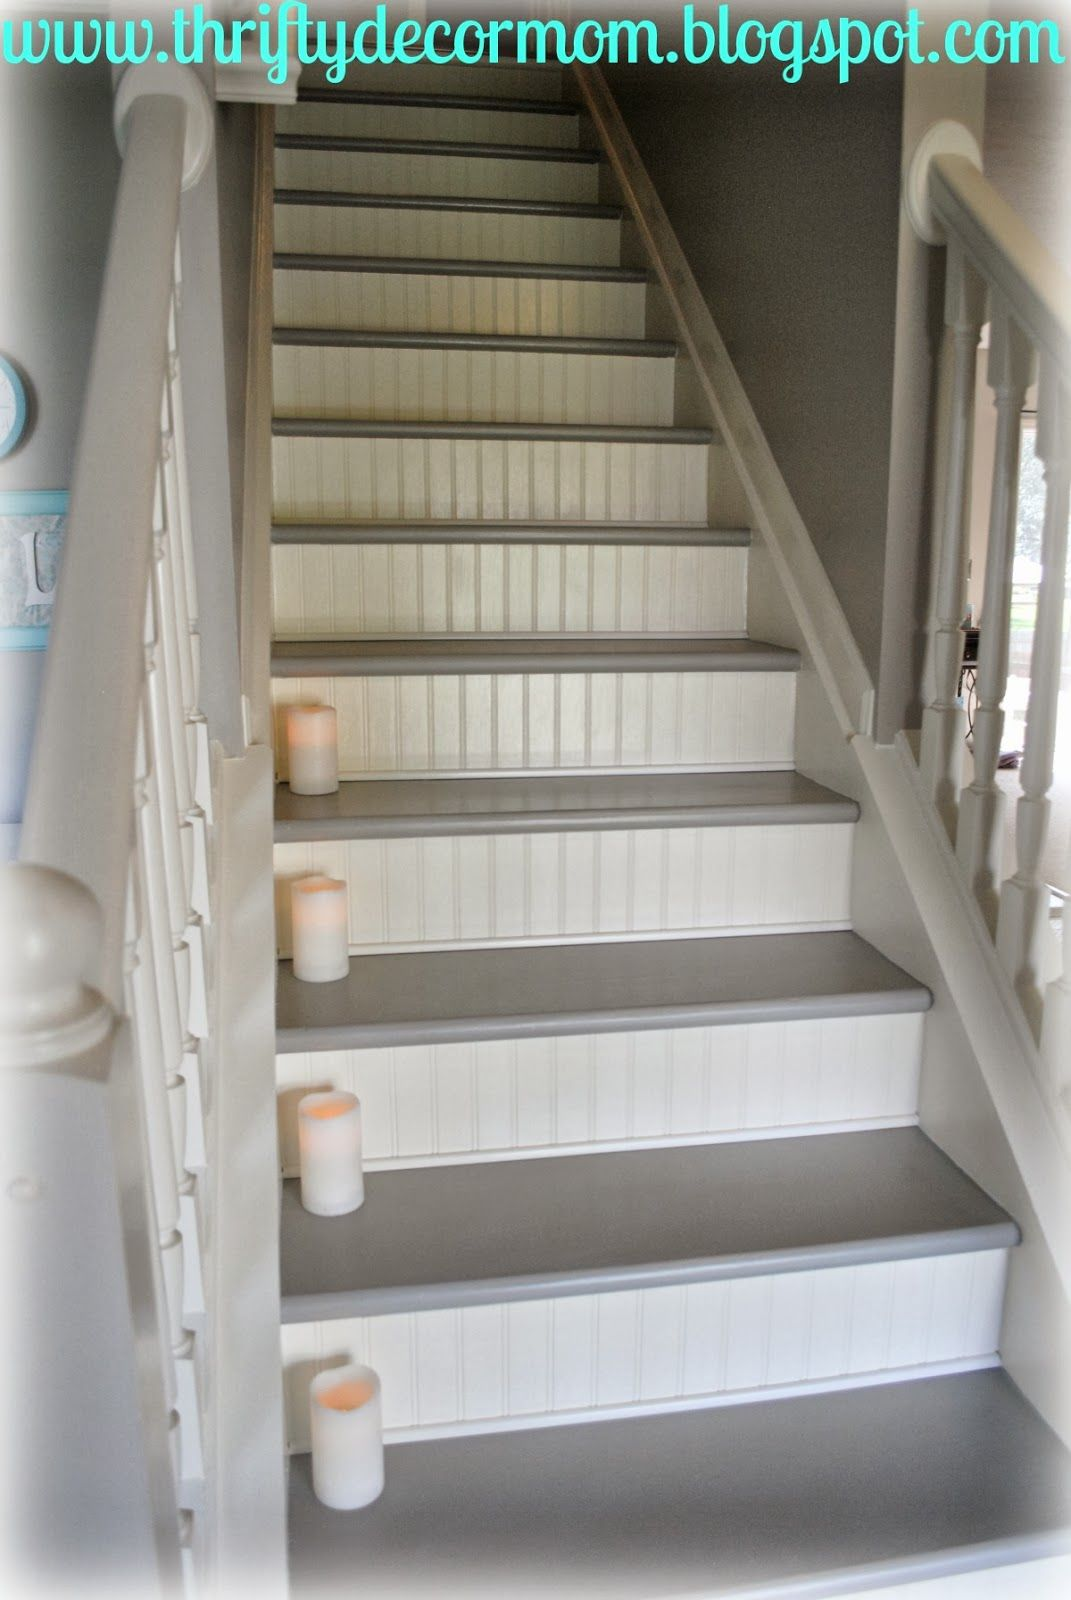 I'm so excited to share the updates we made to our stairs